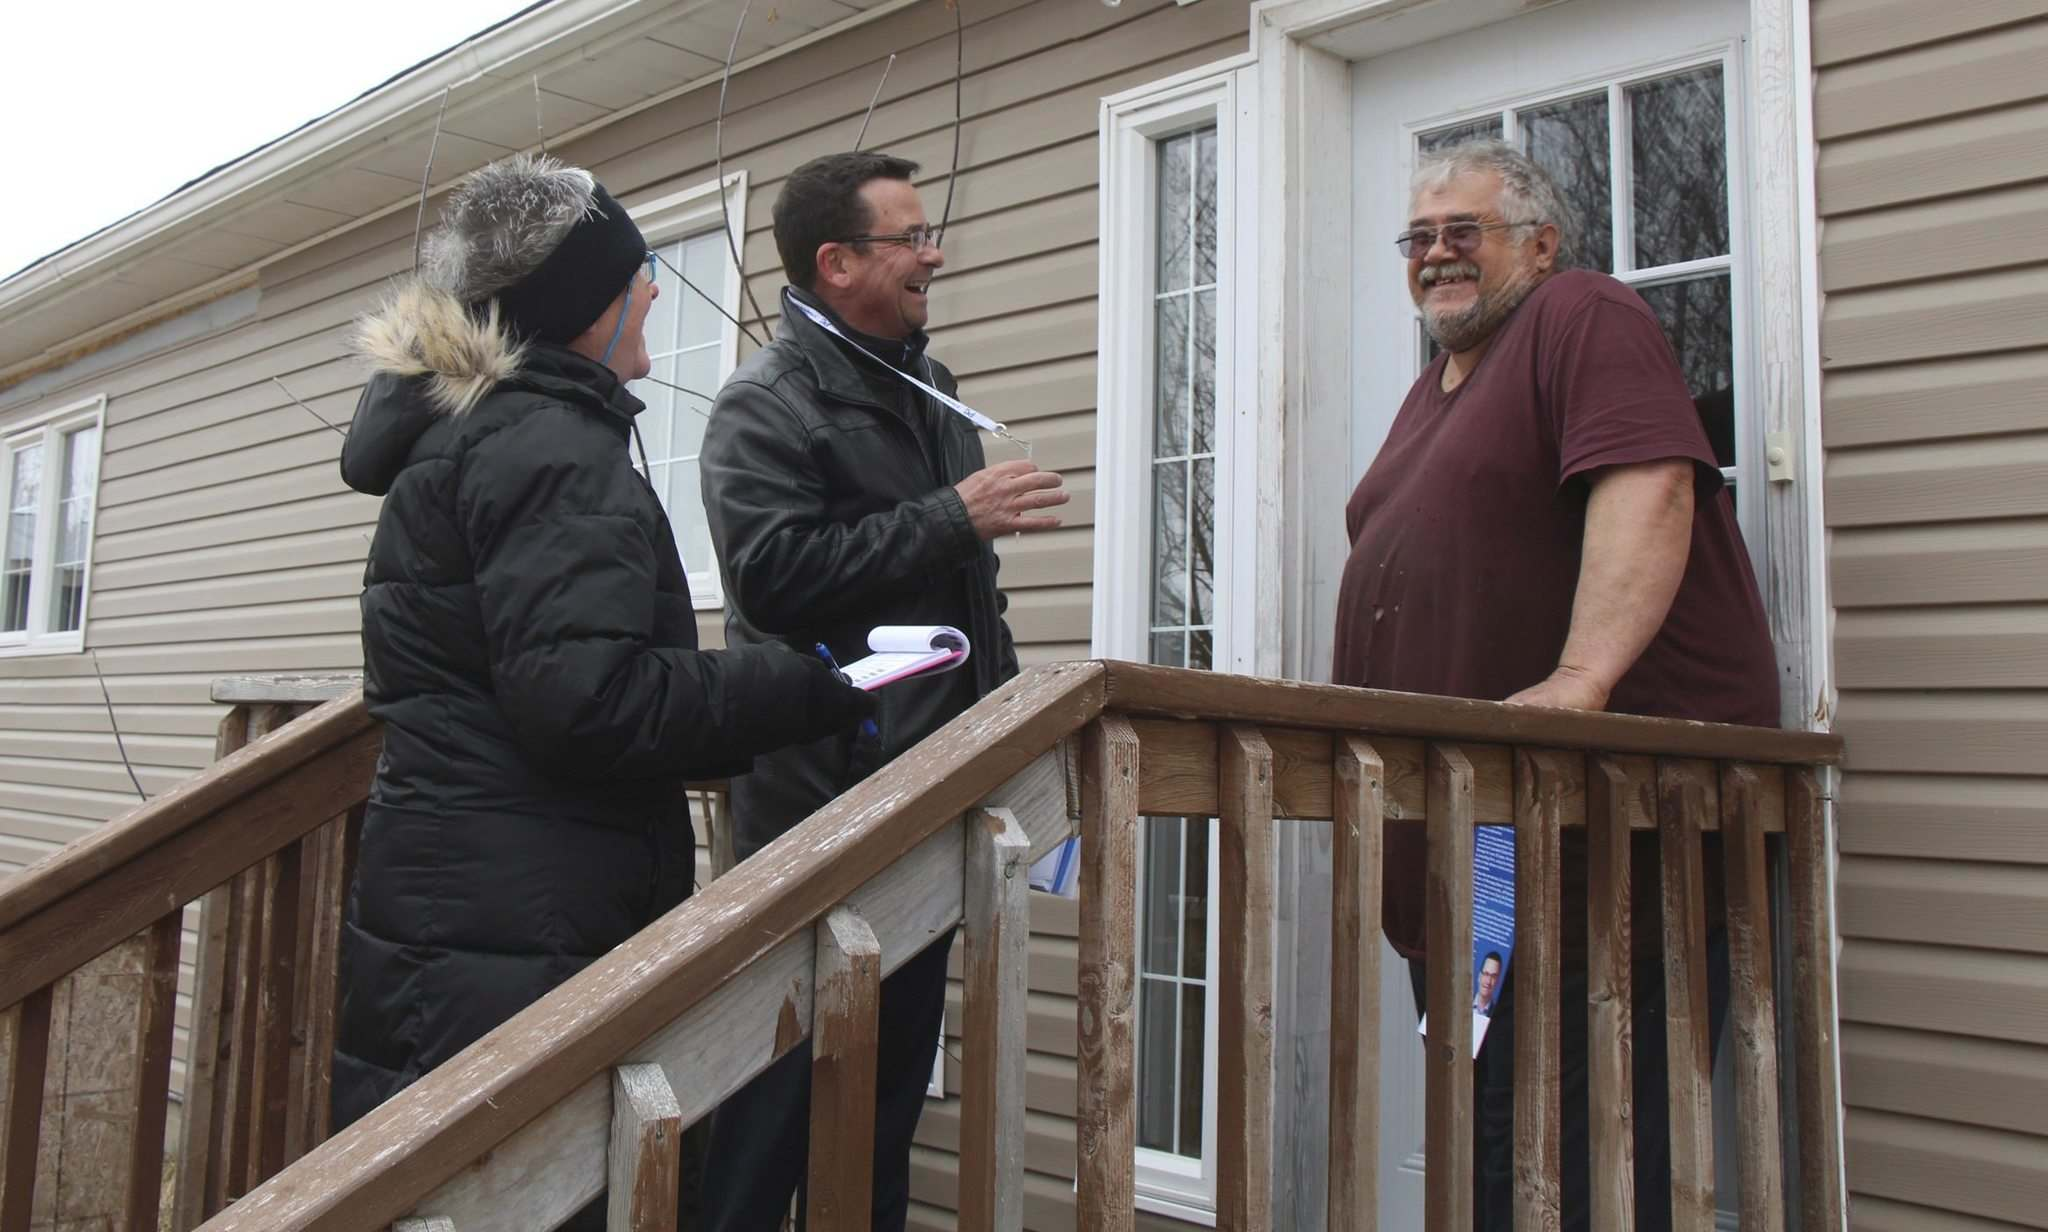 Gimli PC candidate Jeff Wharton (centre) and his wife Mickey speak to undecided voter Frank Harder while canvassing in Riverton, Man. on Friday, April 1, 2016.</p></p>